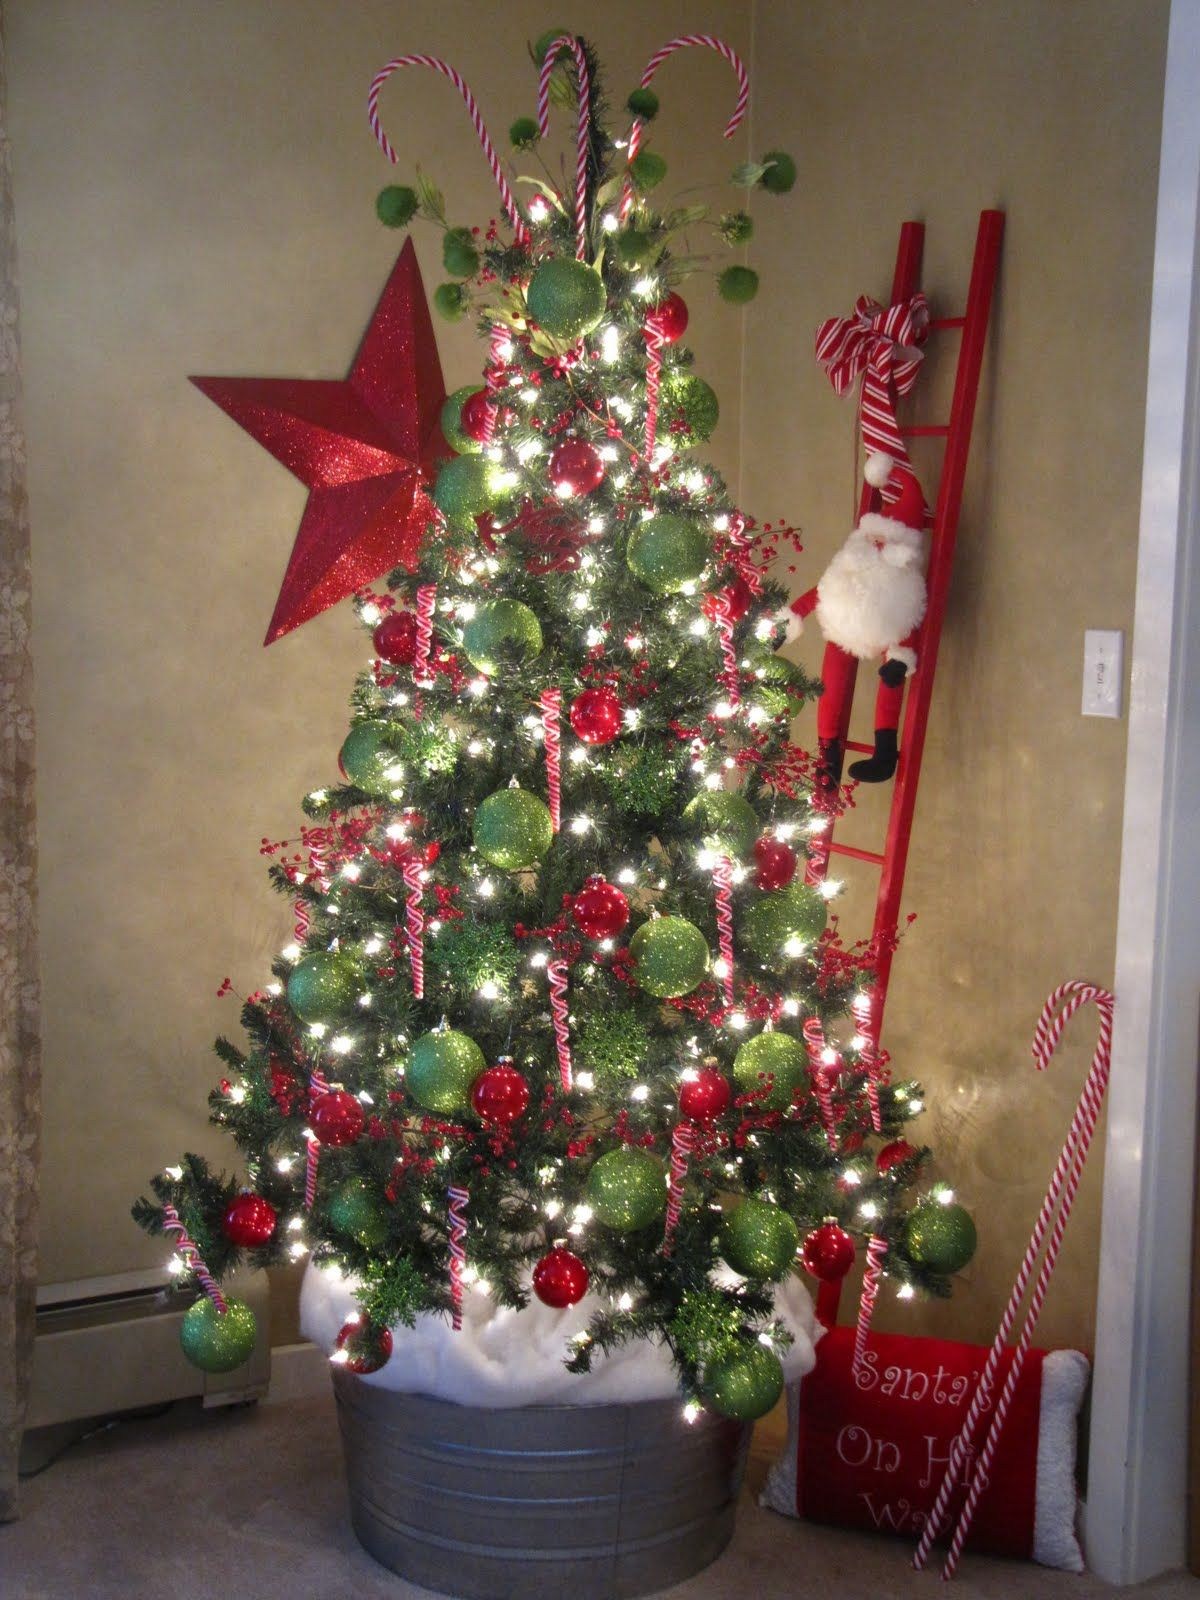 Sew Many Ways...: Christmas Home Tour 2010... // By far my most favorite how to blog all the way to ornaments on the hooks on the shower curtain to bell ornaments on the lamps... Could spend hours reading all the neat decorating tips!!